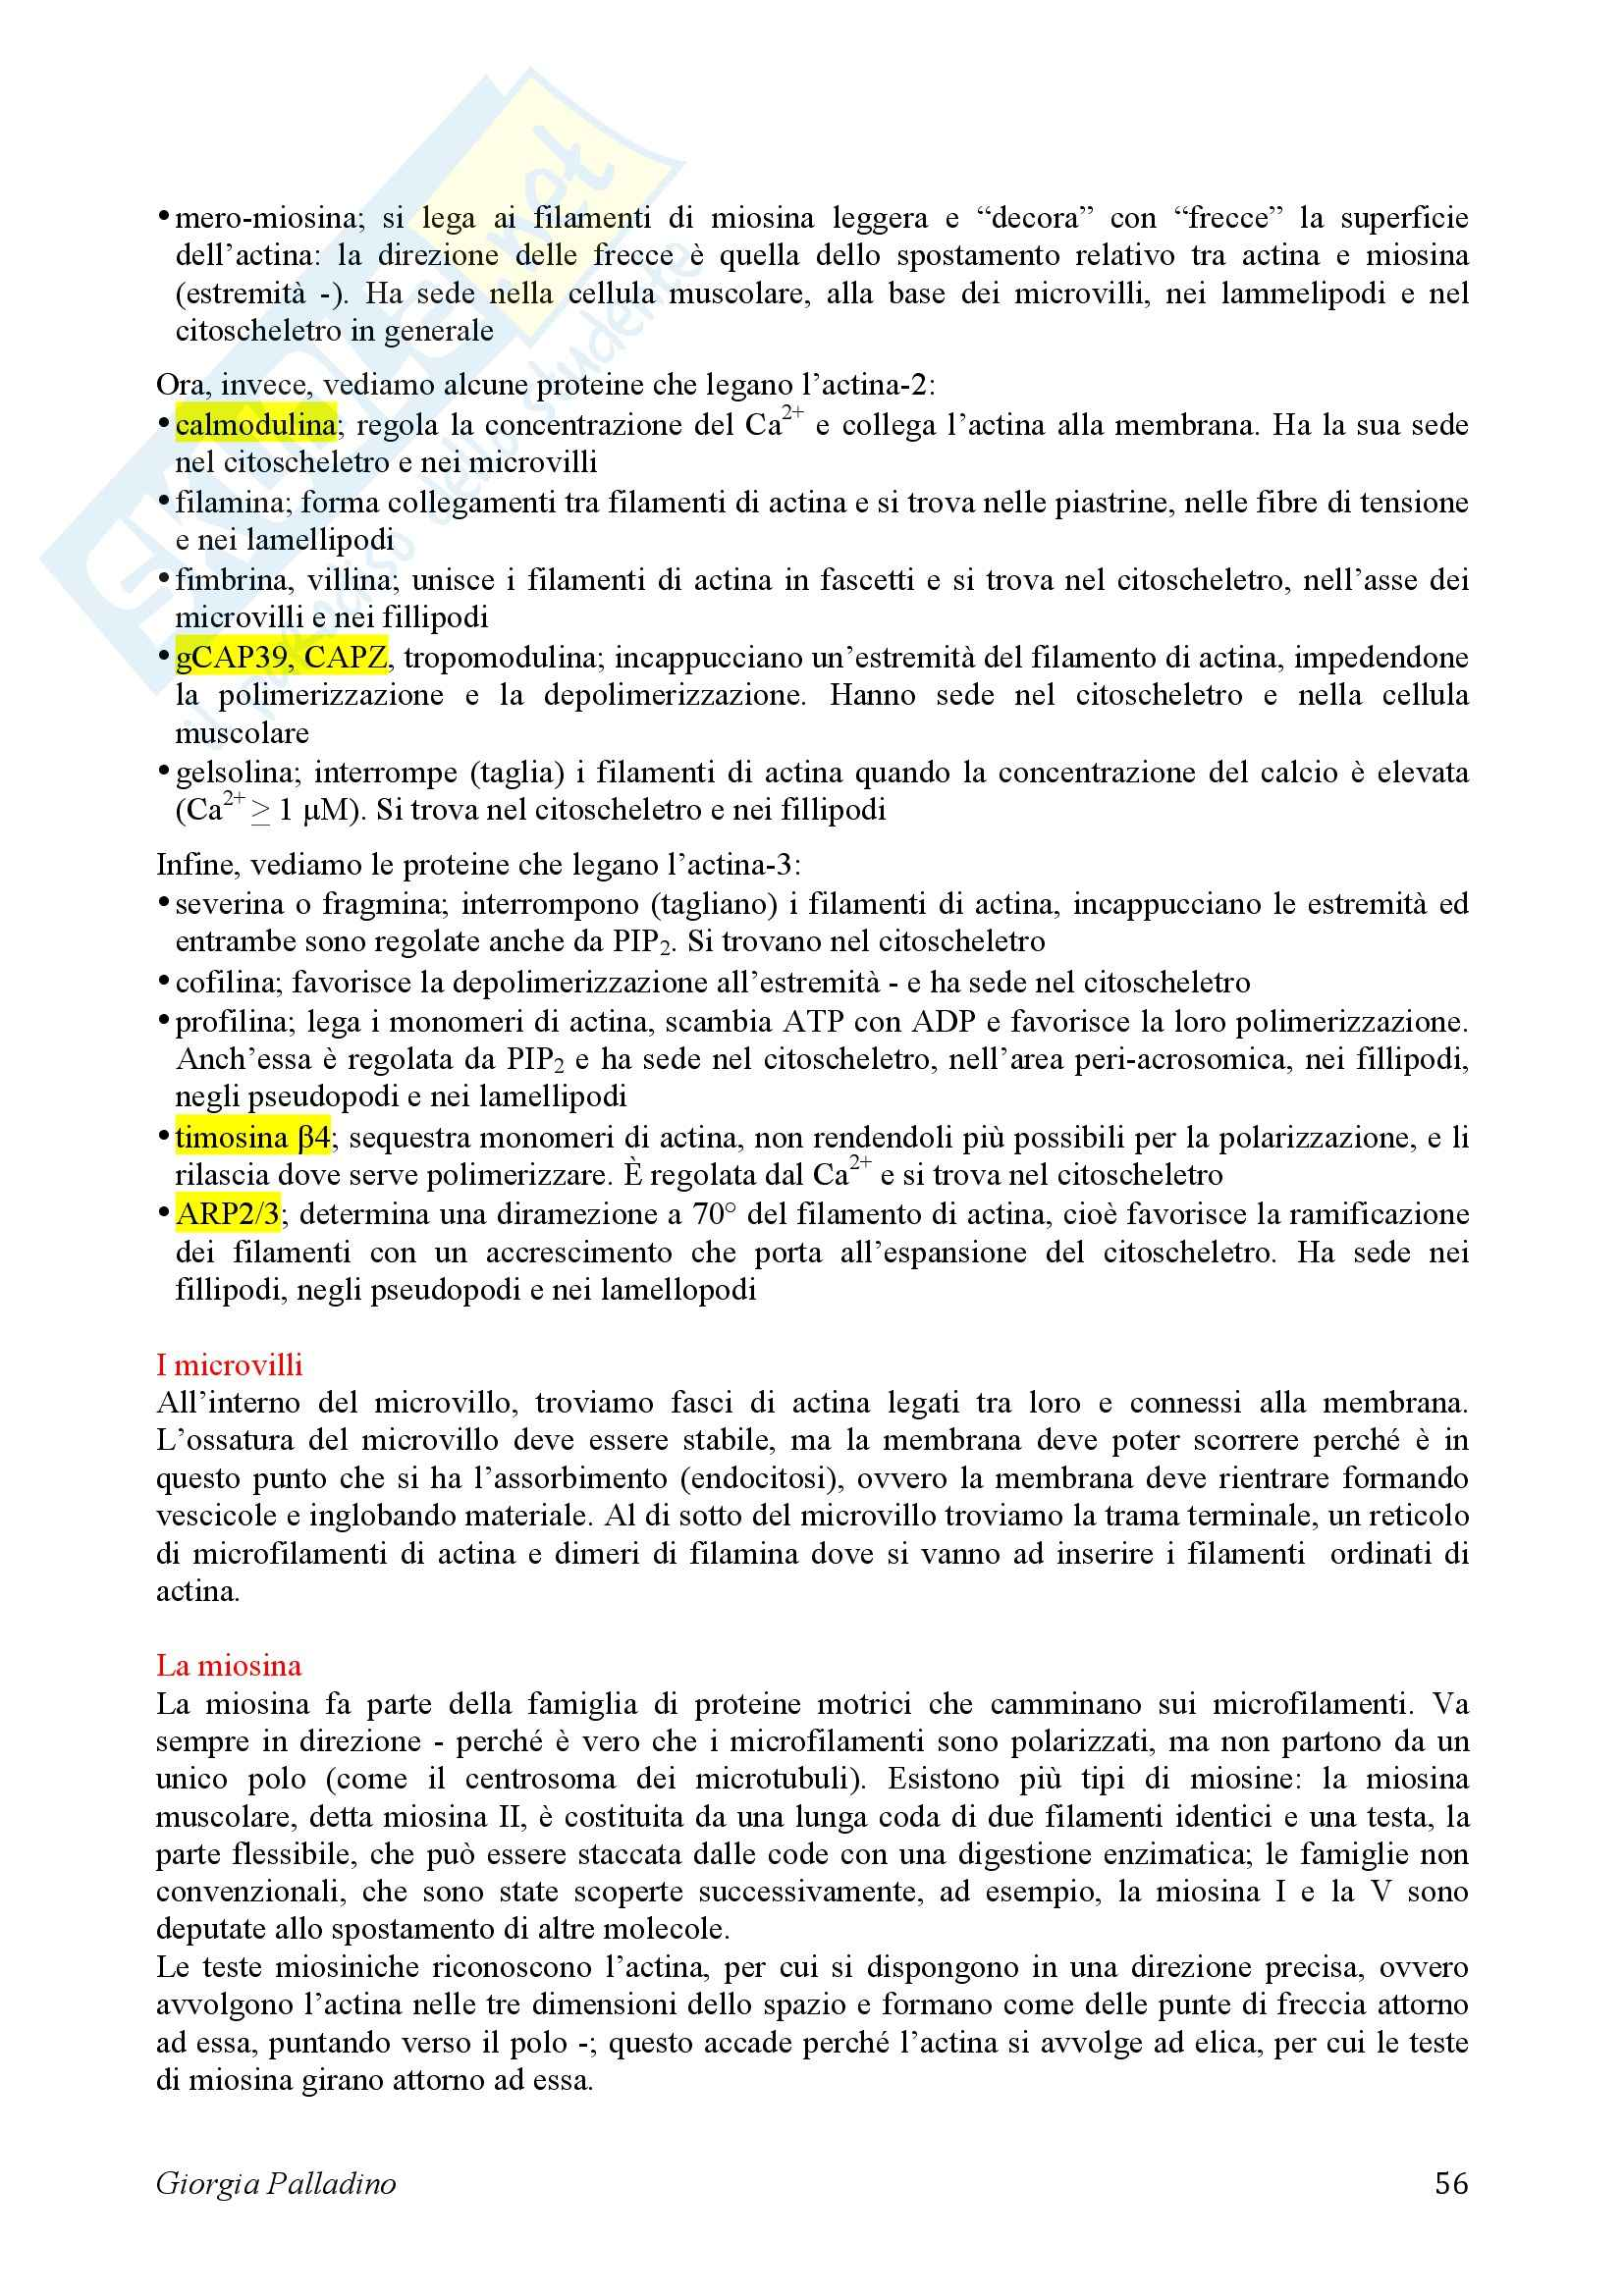 Biologia Cellulare Pag. 56